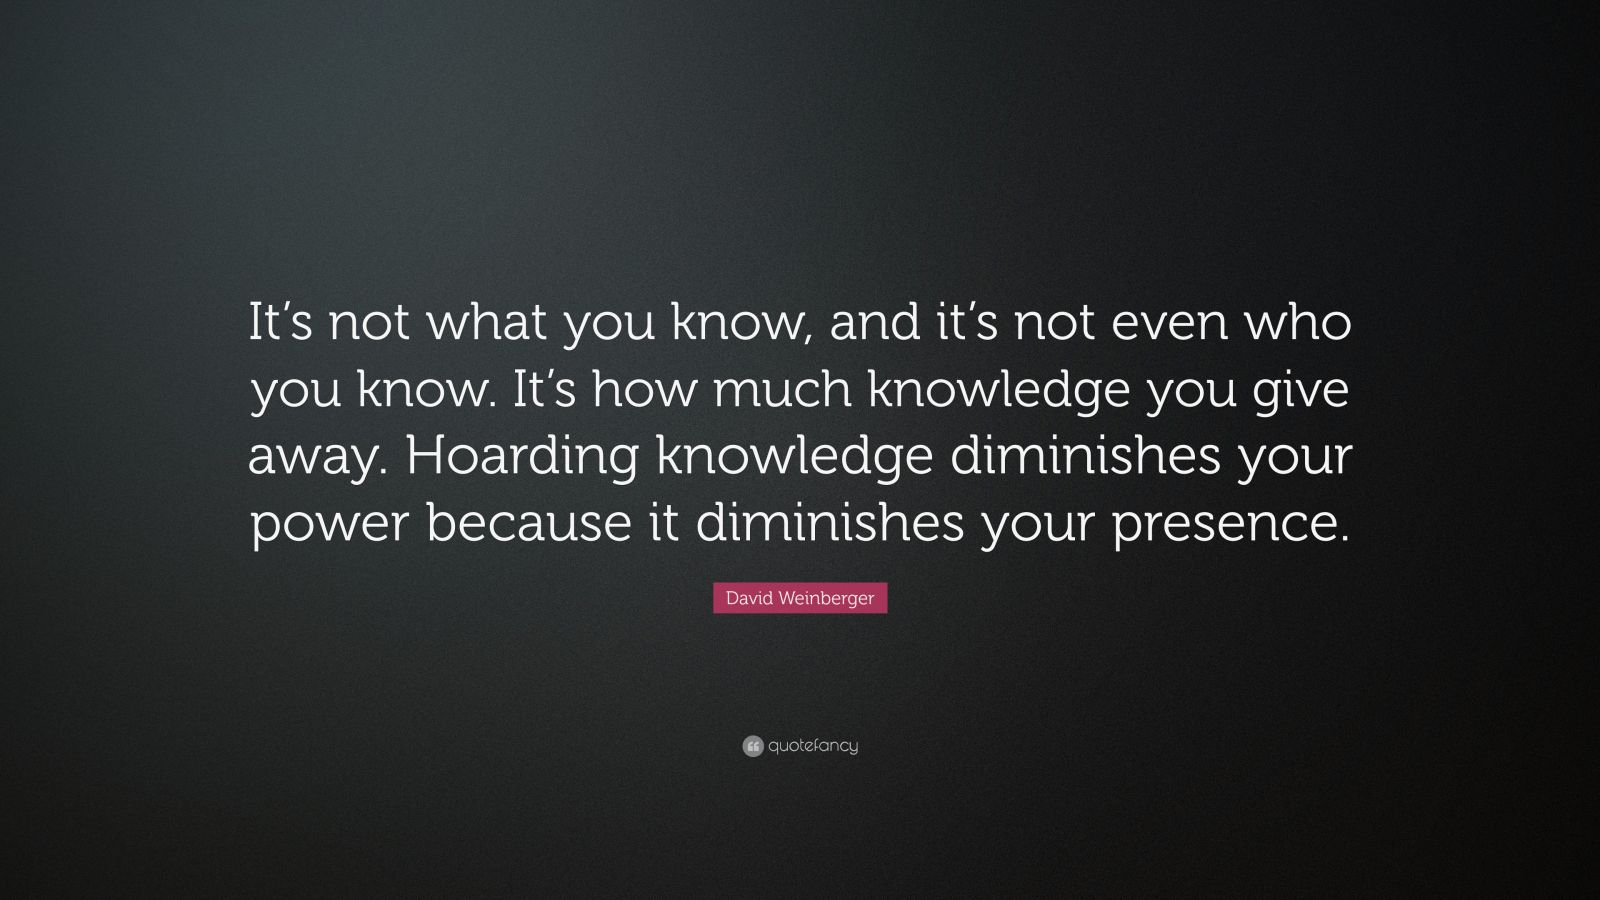 "David Weinberger Quote: ""It's not what you know, and it's not even who you know. It's how much knowledge you give away. Hoarding knowledge diminishes your power because it diminishes your presence."""